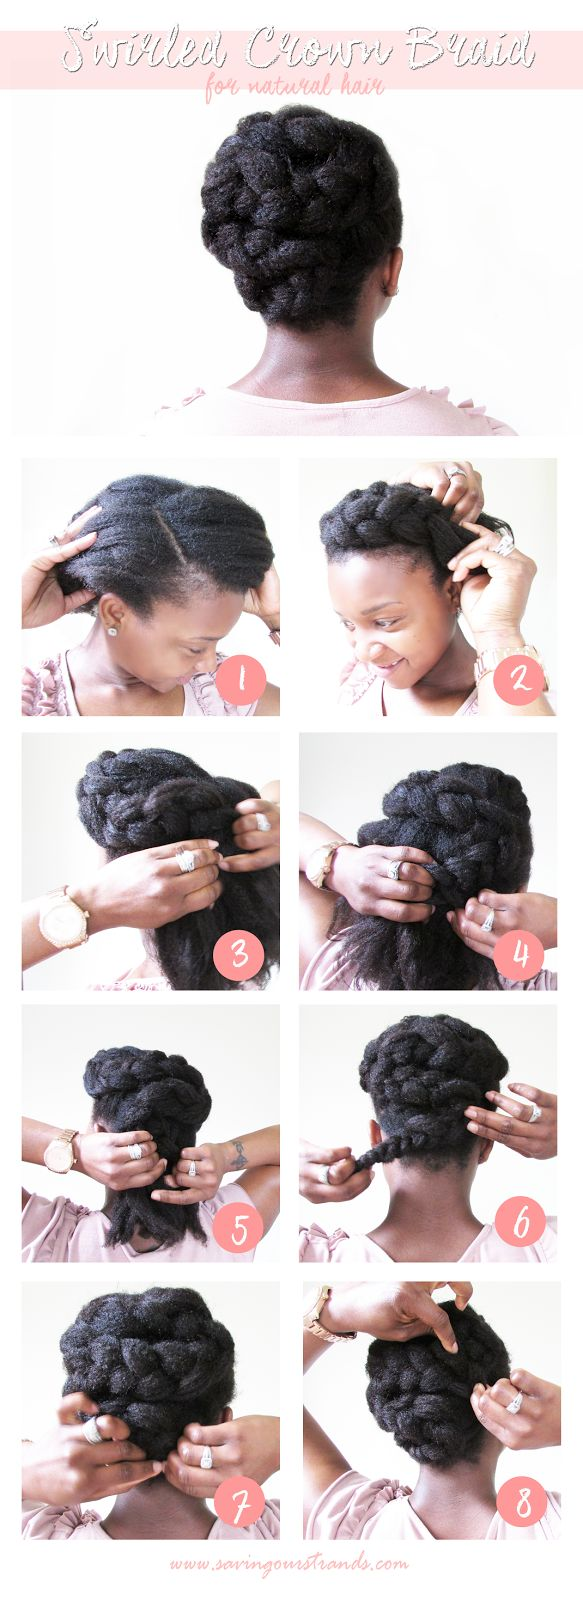 1600 best Natural Hair is Gorgeous images on Pinterest | Natural ...